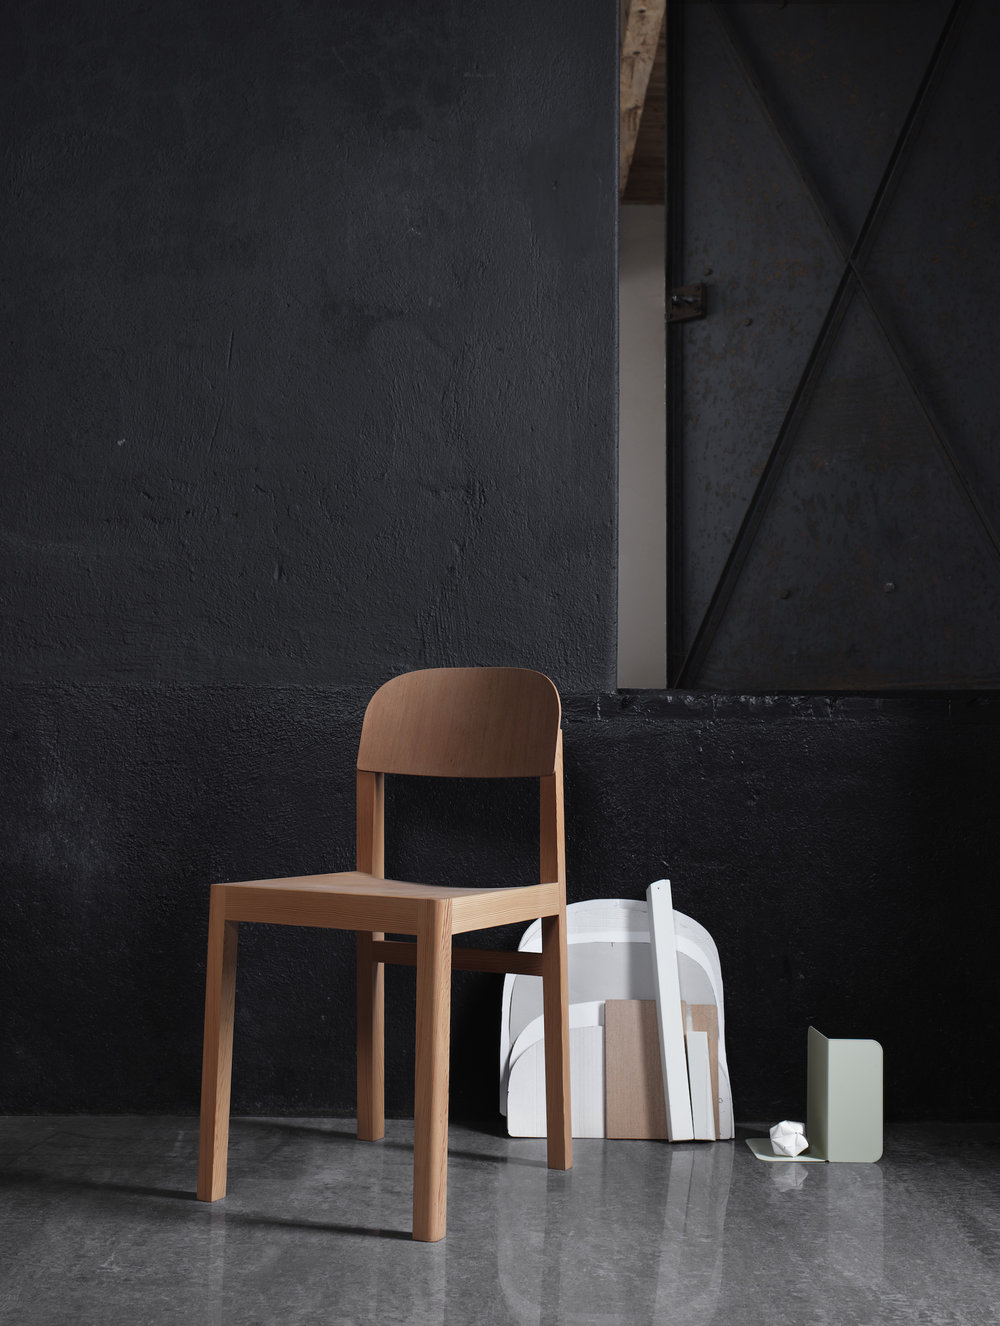 Workshop Chair designed by Cecilie Manz